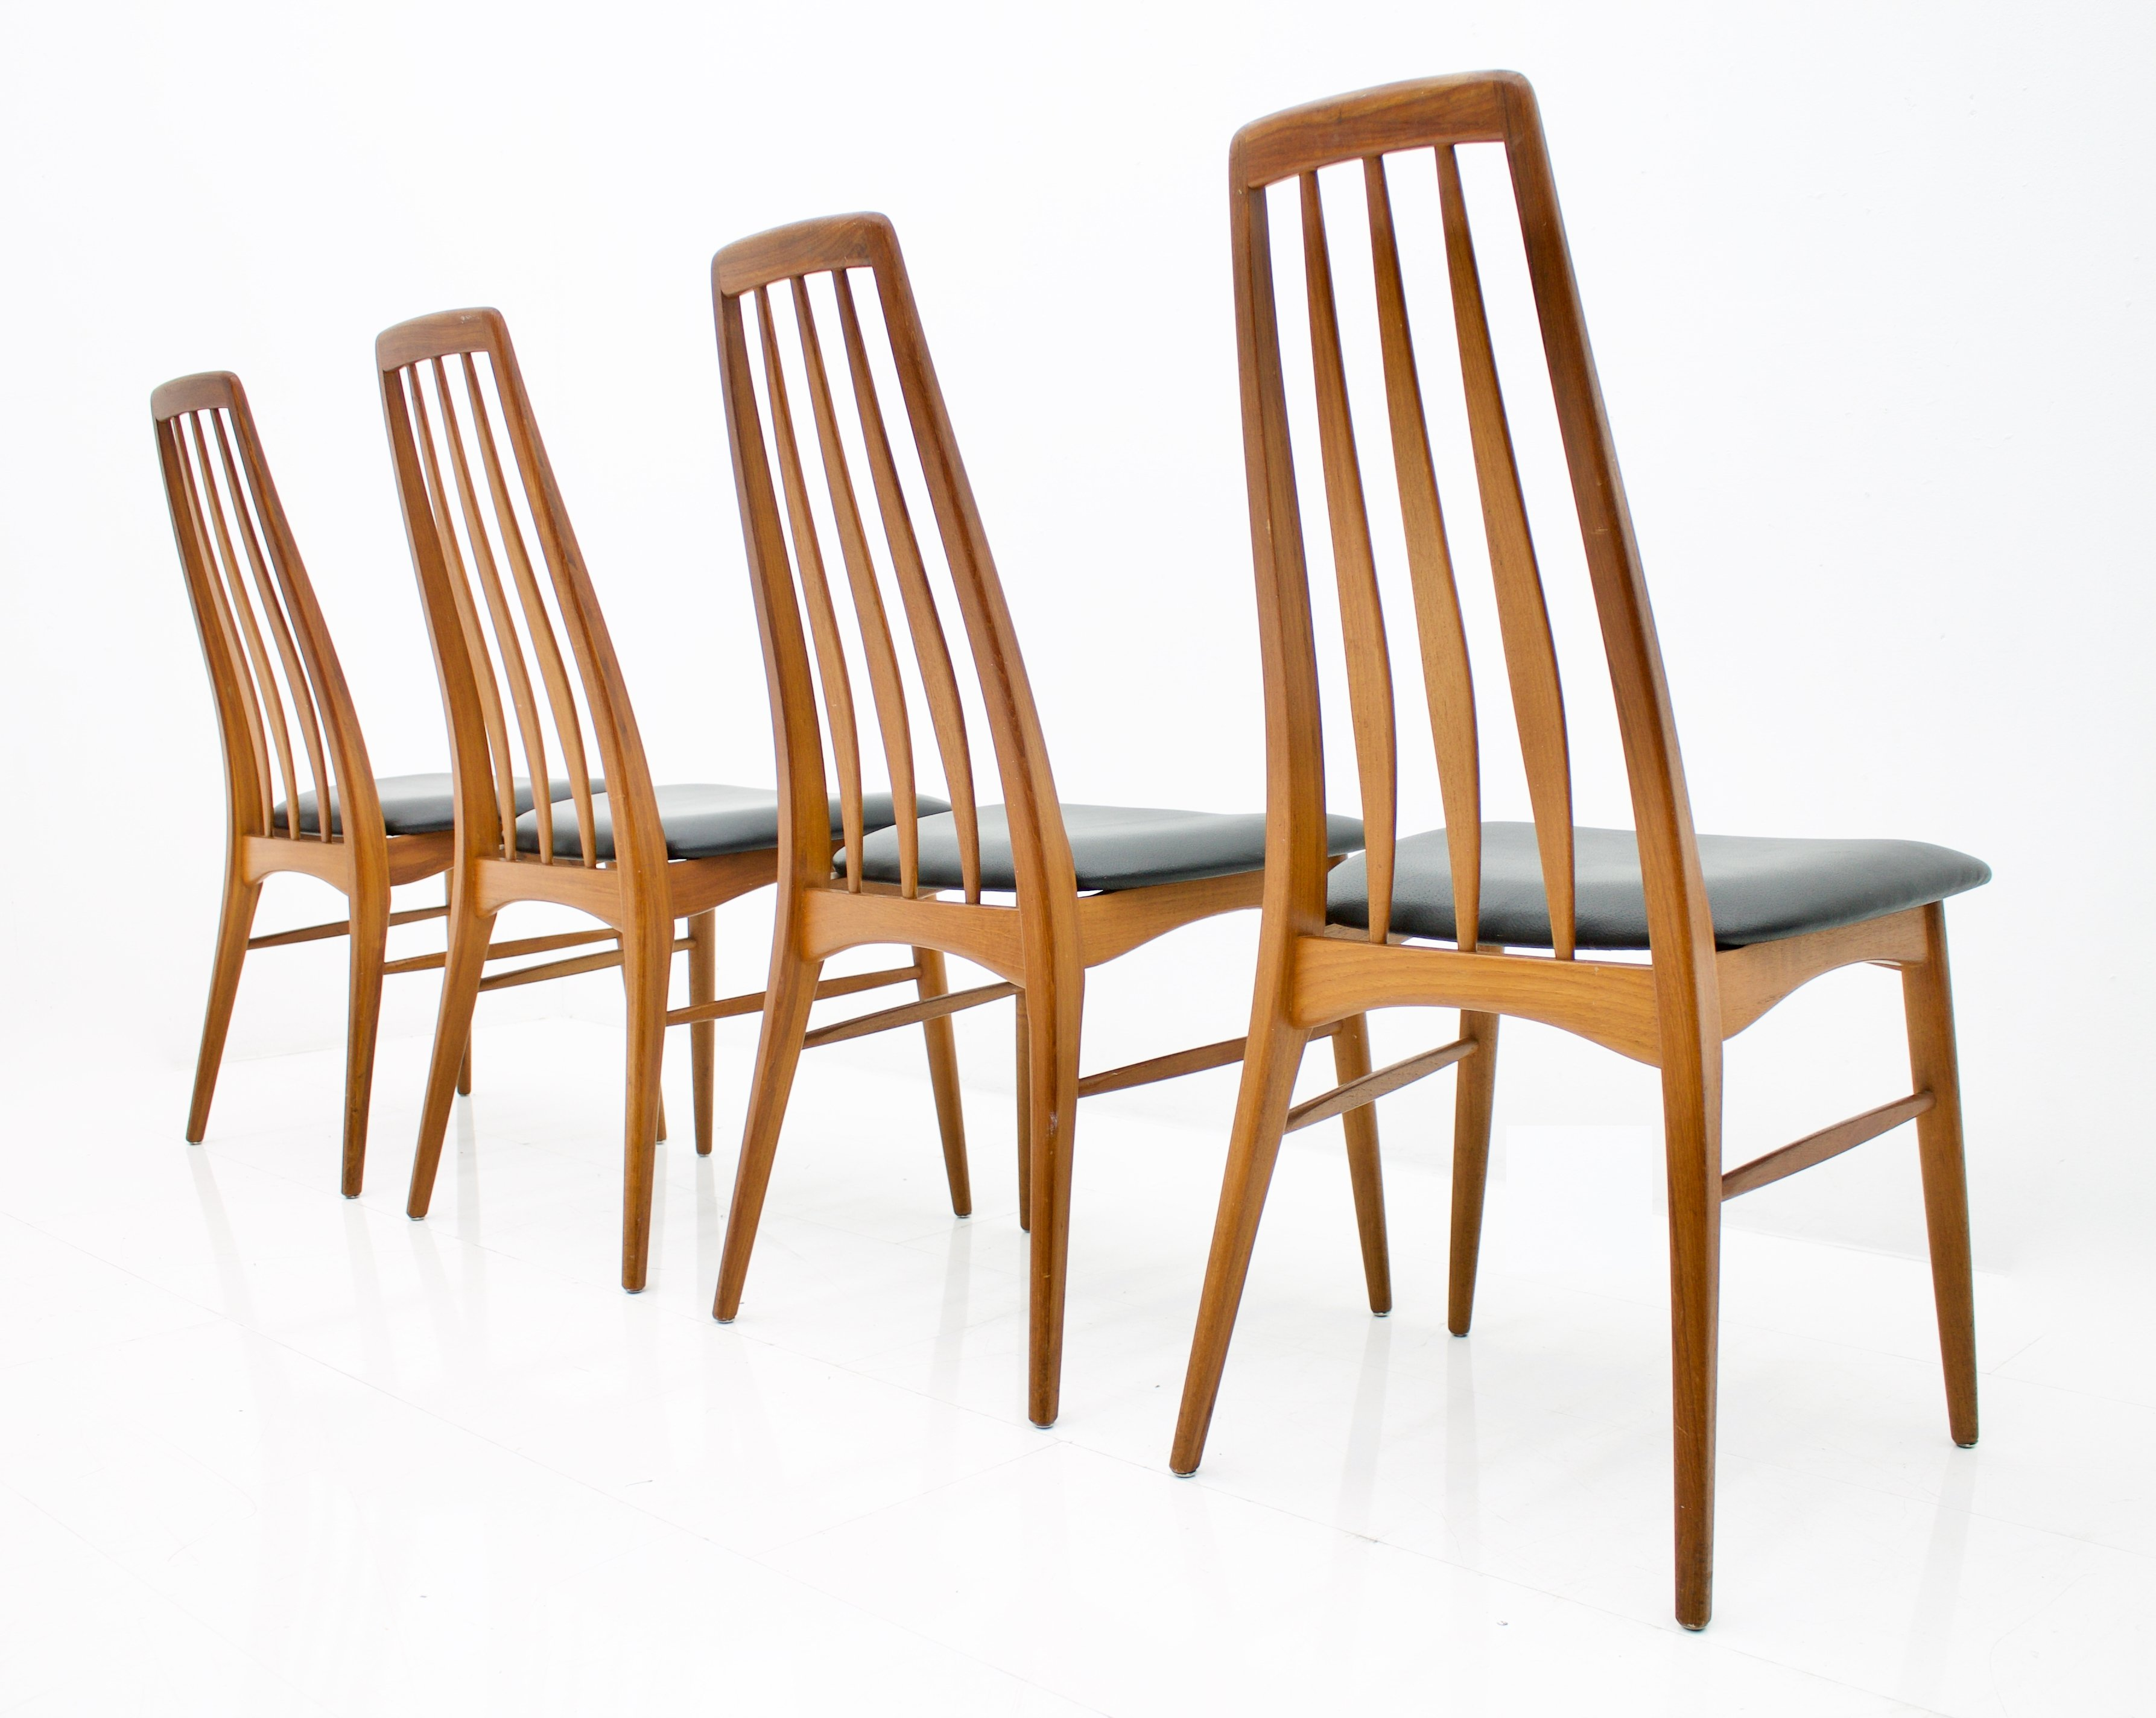 Surprising Set Of Four Teak Leather Eva Dining Chairs By Niels Kofoed Creativecarmelina Interior Chair Design Creativecarmelinacom